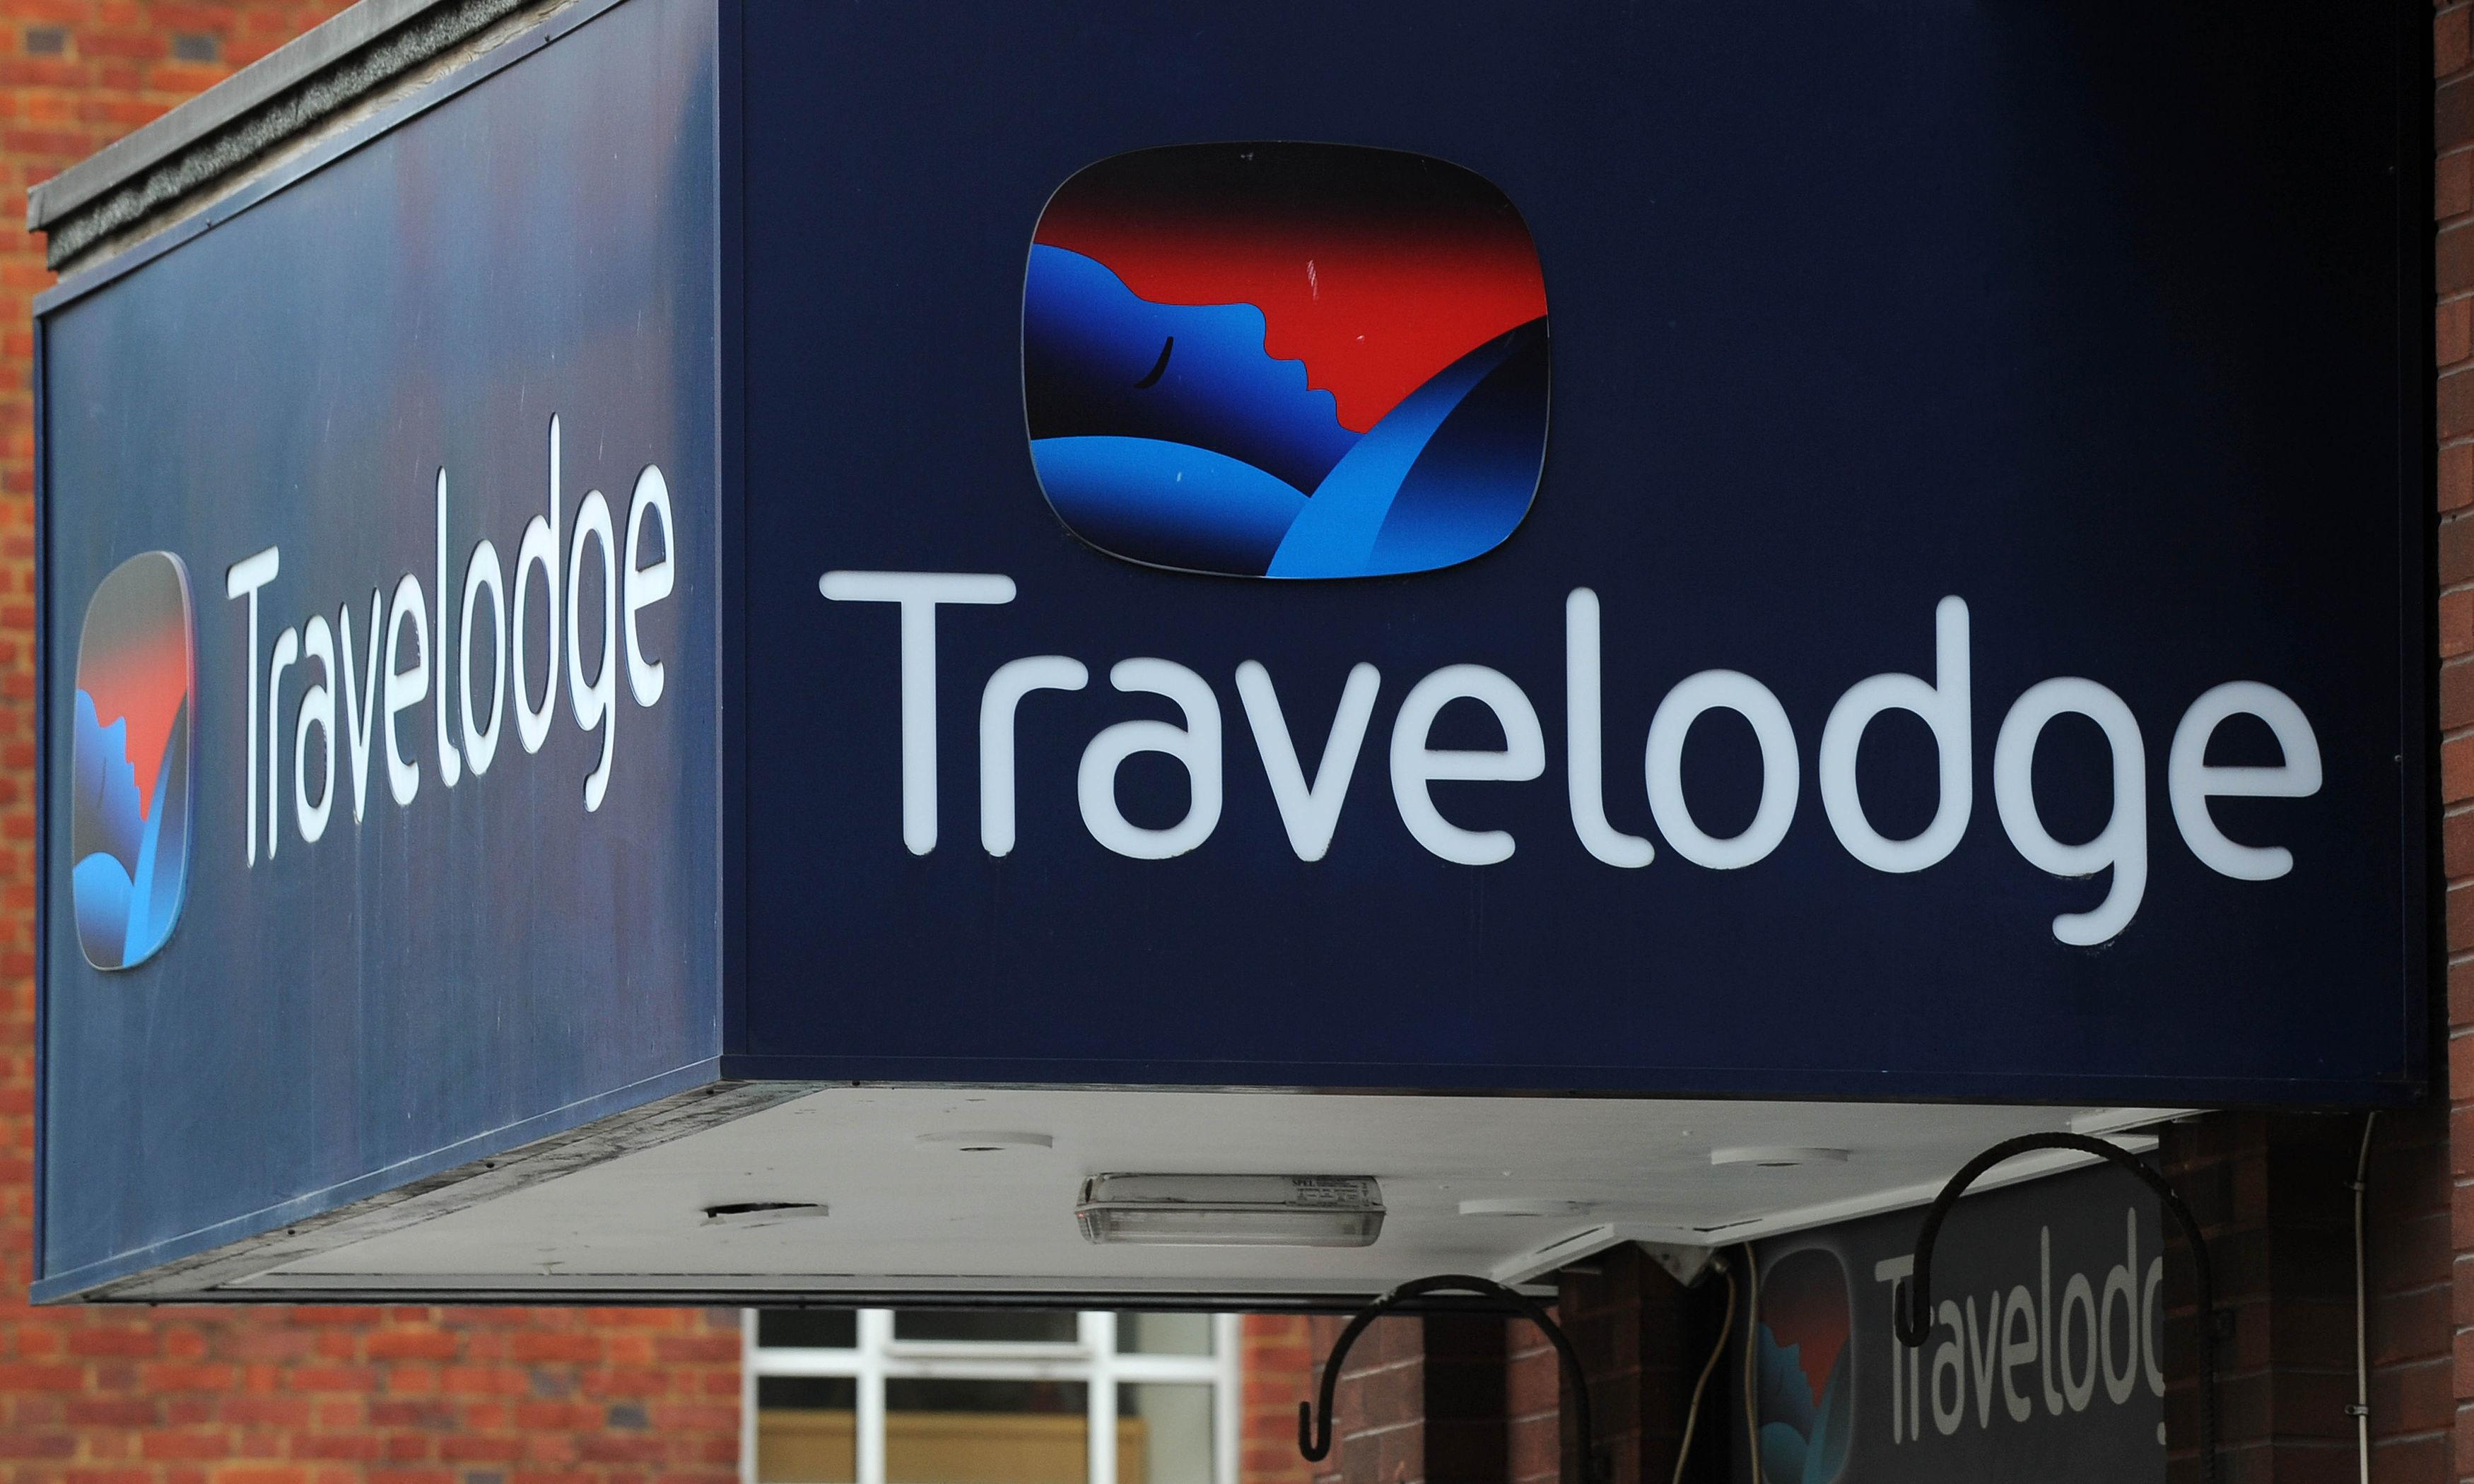 Travelodge seeks parents to fill post-Brexit staffing gaps